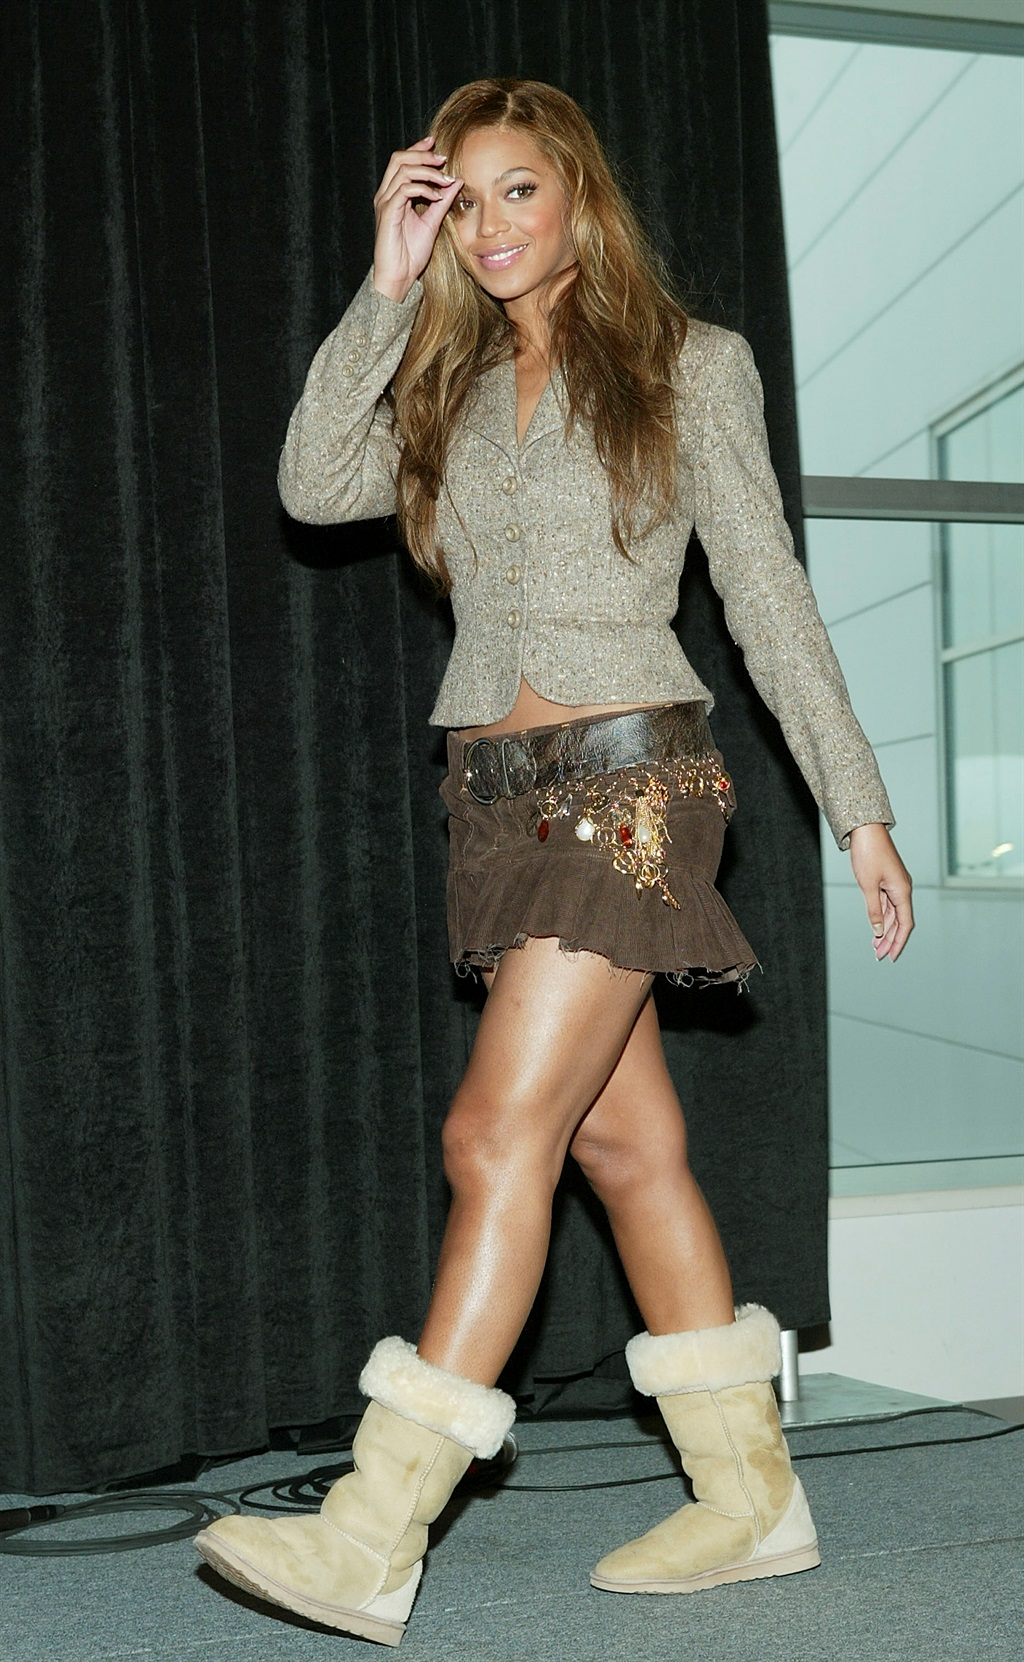 HOUSTON - JANUARY 30: Singer Beyonce Knowles pose